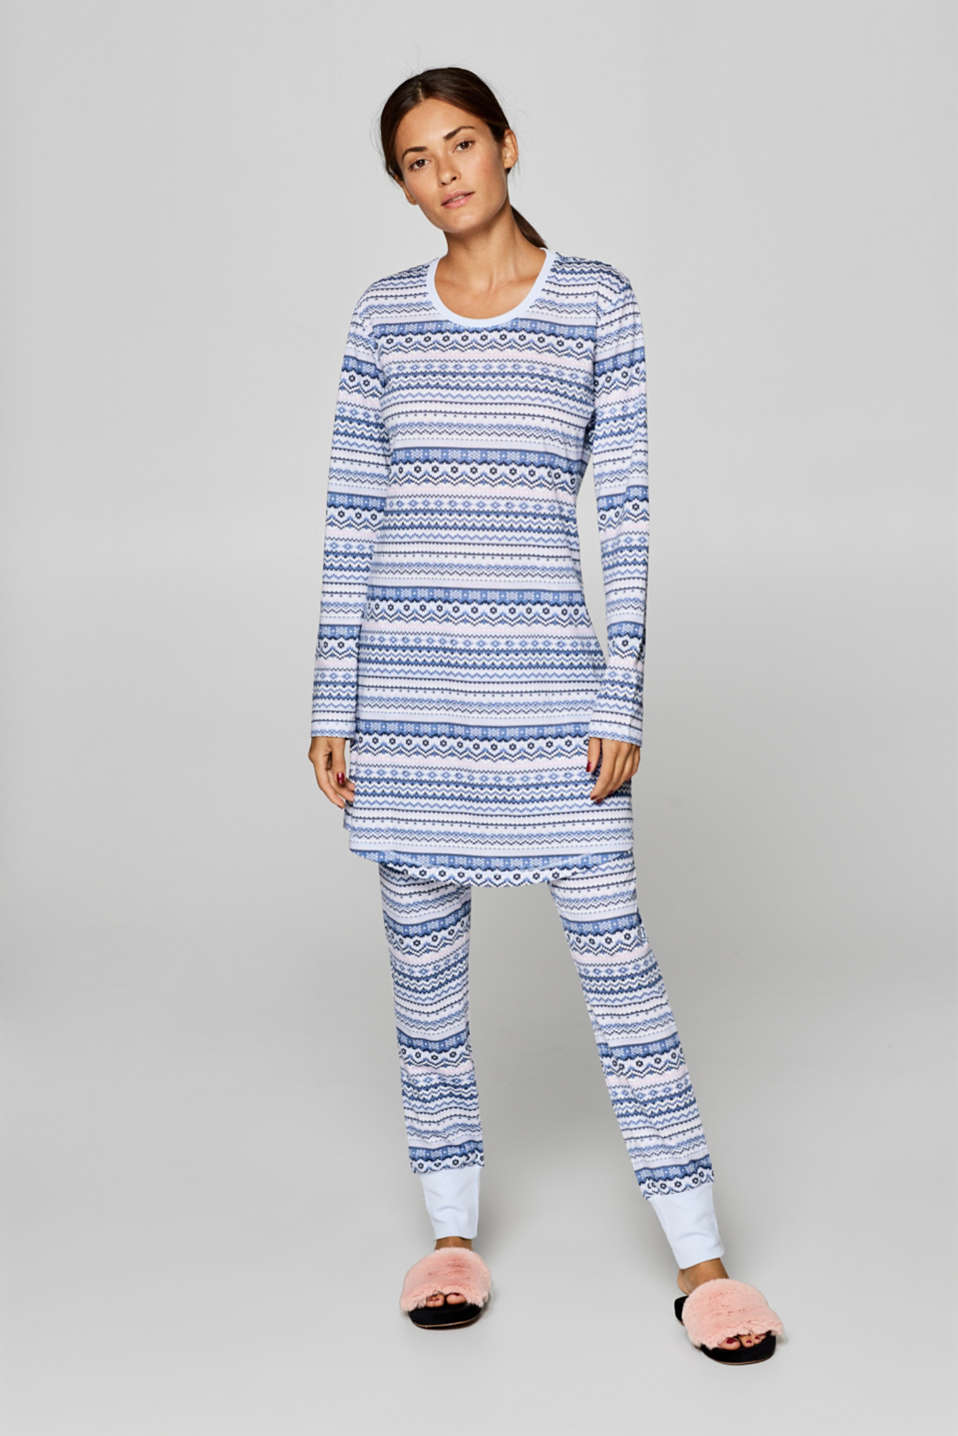 Esprit - Jersey pattern mix nightshirt, 100% cotton